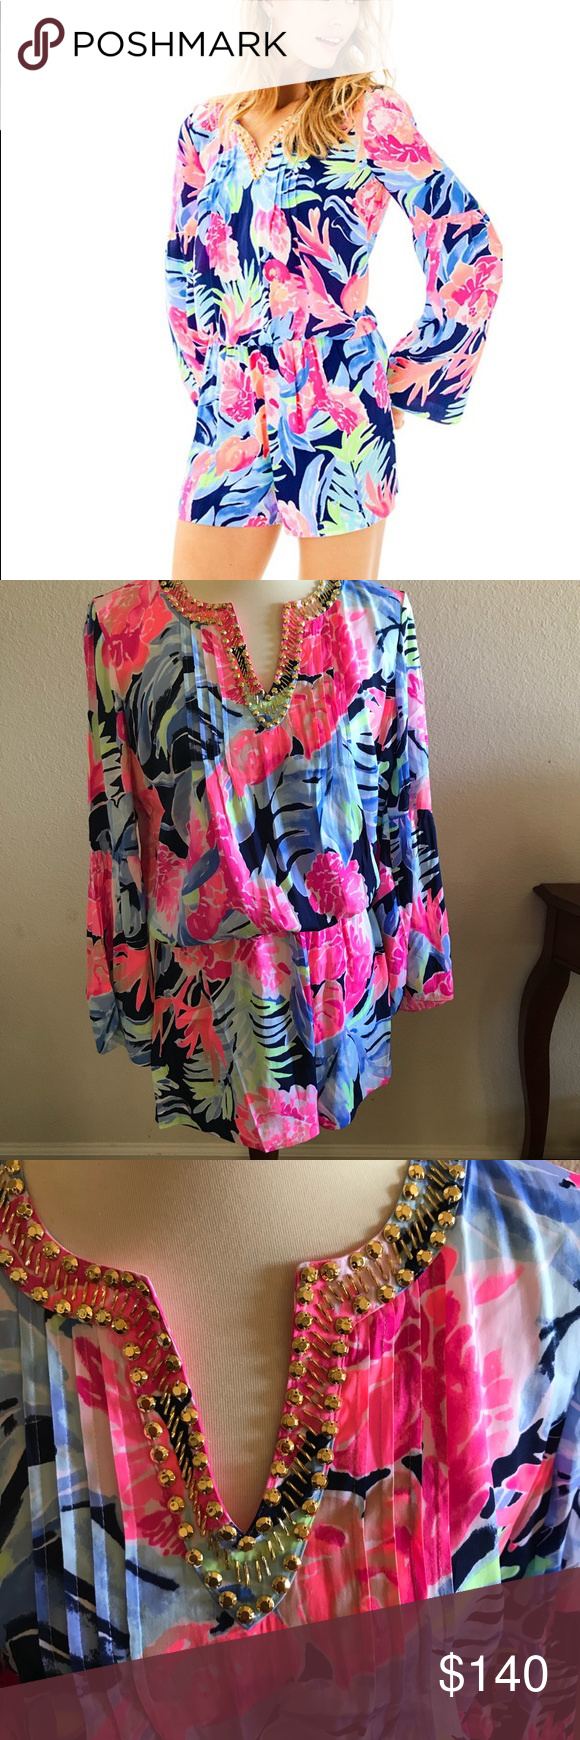 43653b76a69c NWT Lilly Pulitzer Arielle Romper Brand new with tags Arielle romper. The Ariele  printed romper